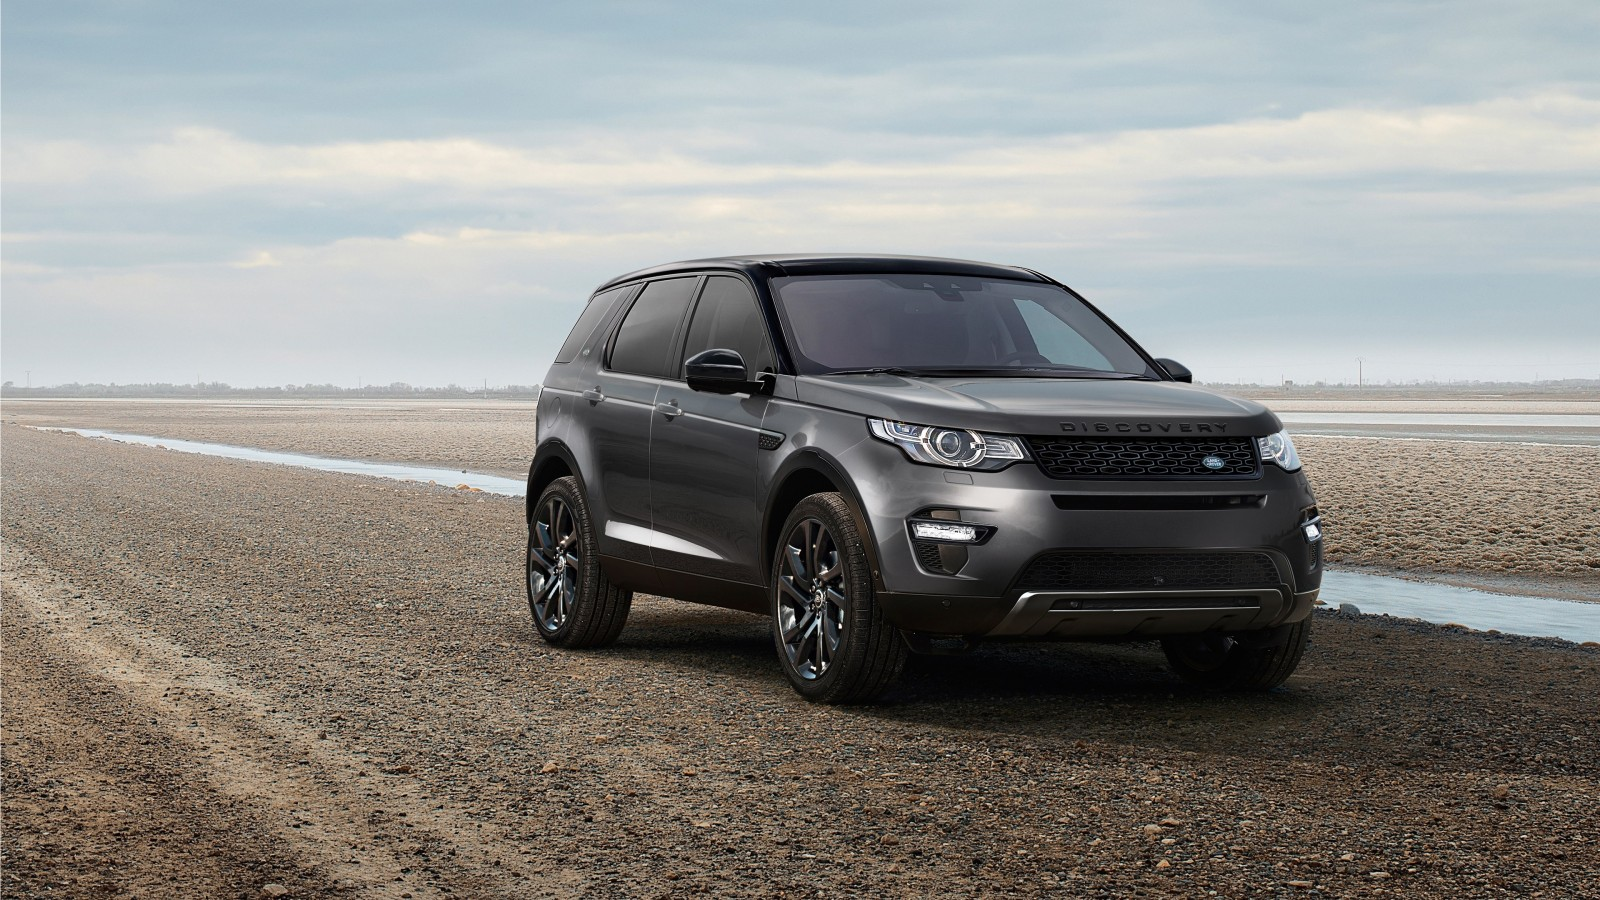 Ultra Hd Wallpapers 8k Cars Pack 2017 Land Rover Discovery Sport 4k Wallpaper Hd Car